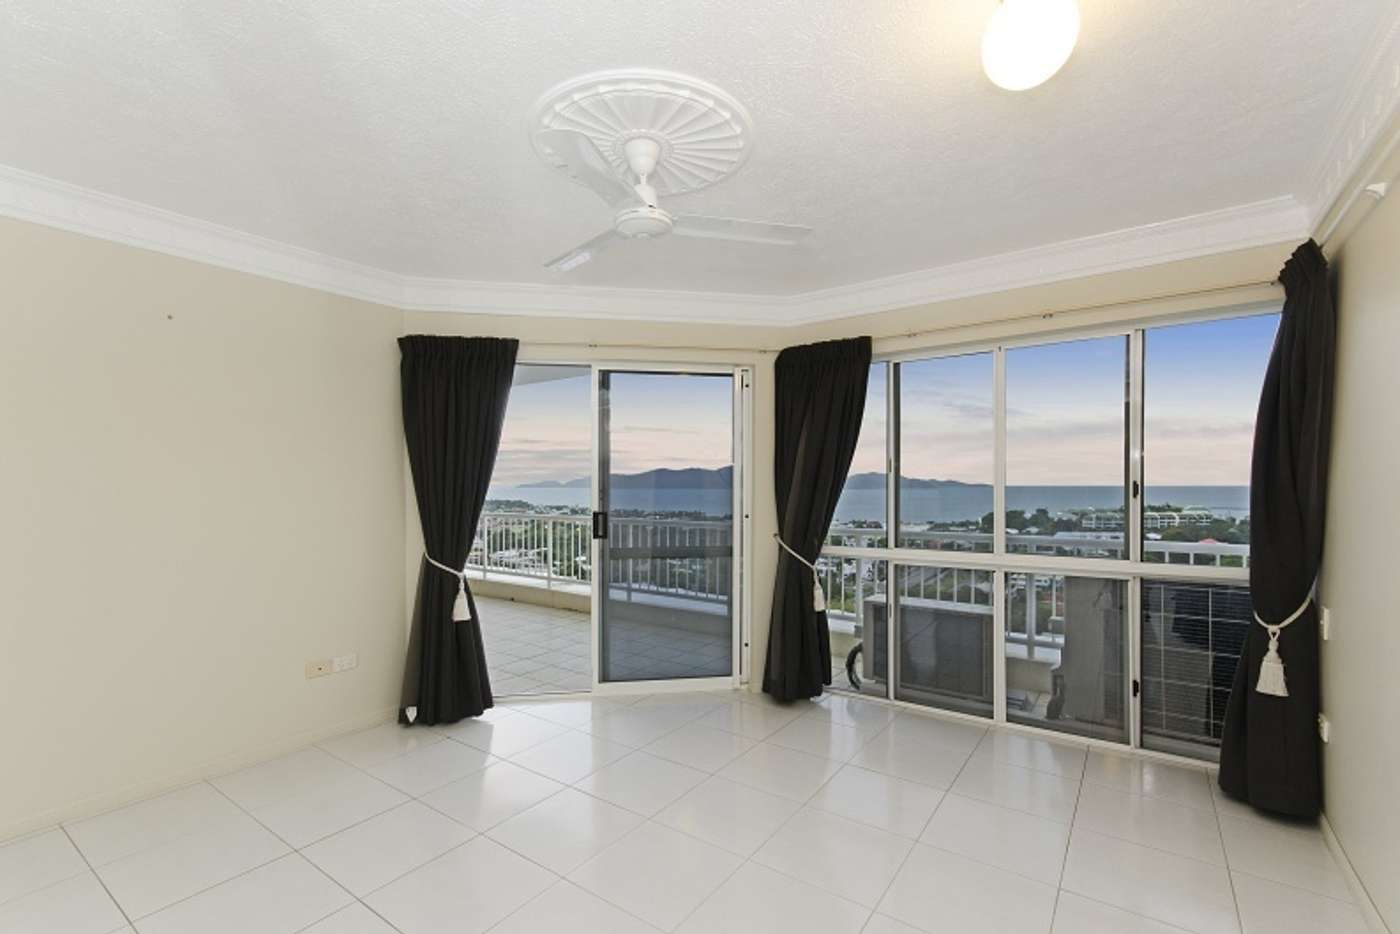 Sixth view of Homely apartment listing, 3/13 Hillside Crescent, Townsville City QLD 4810